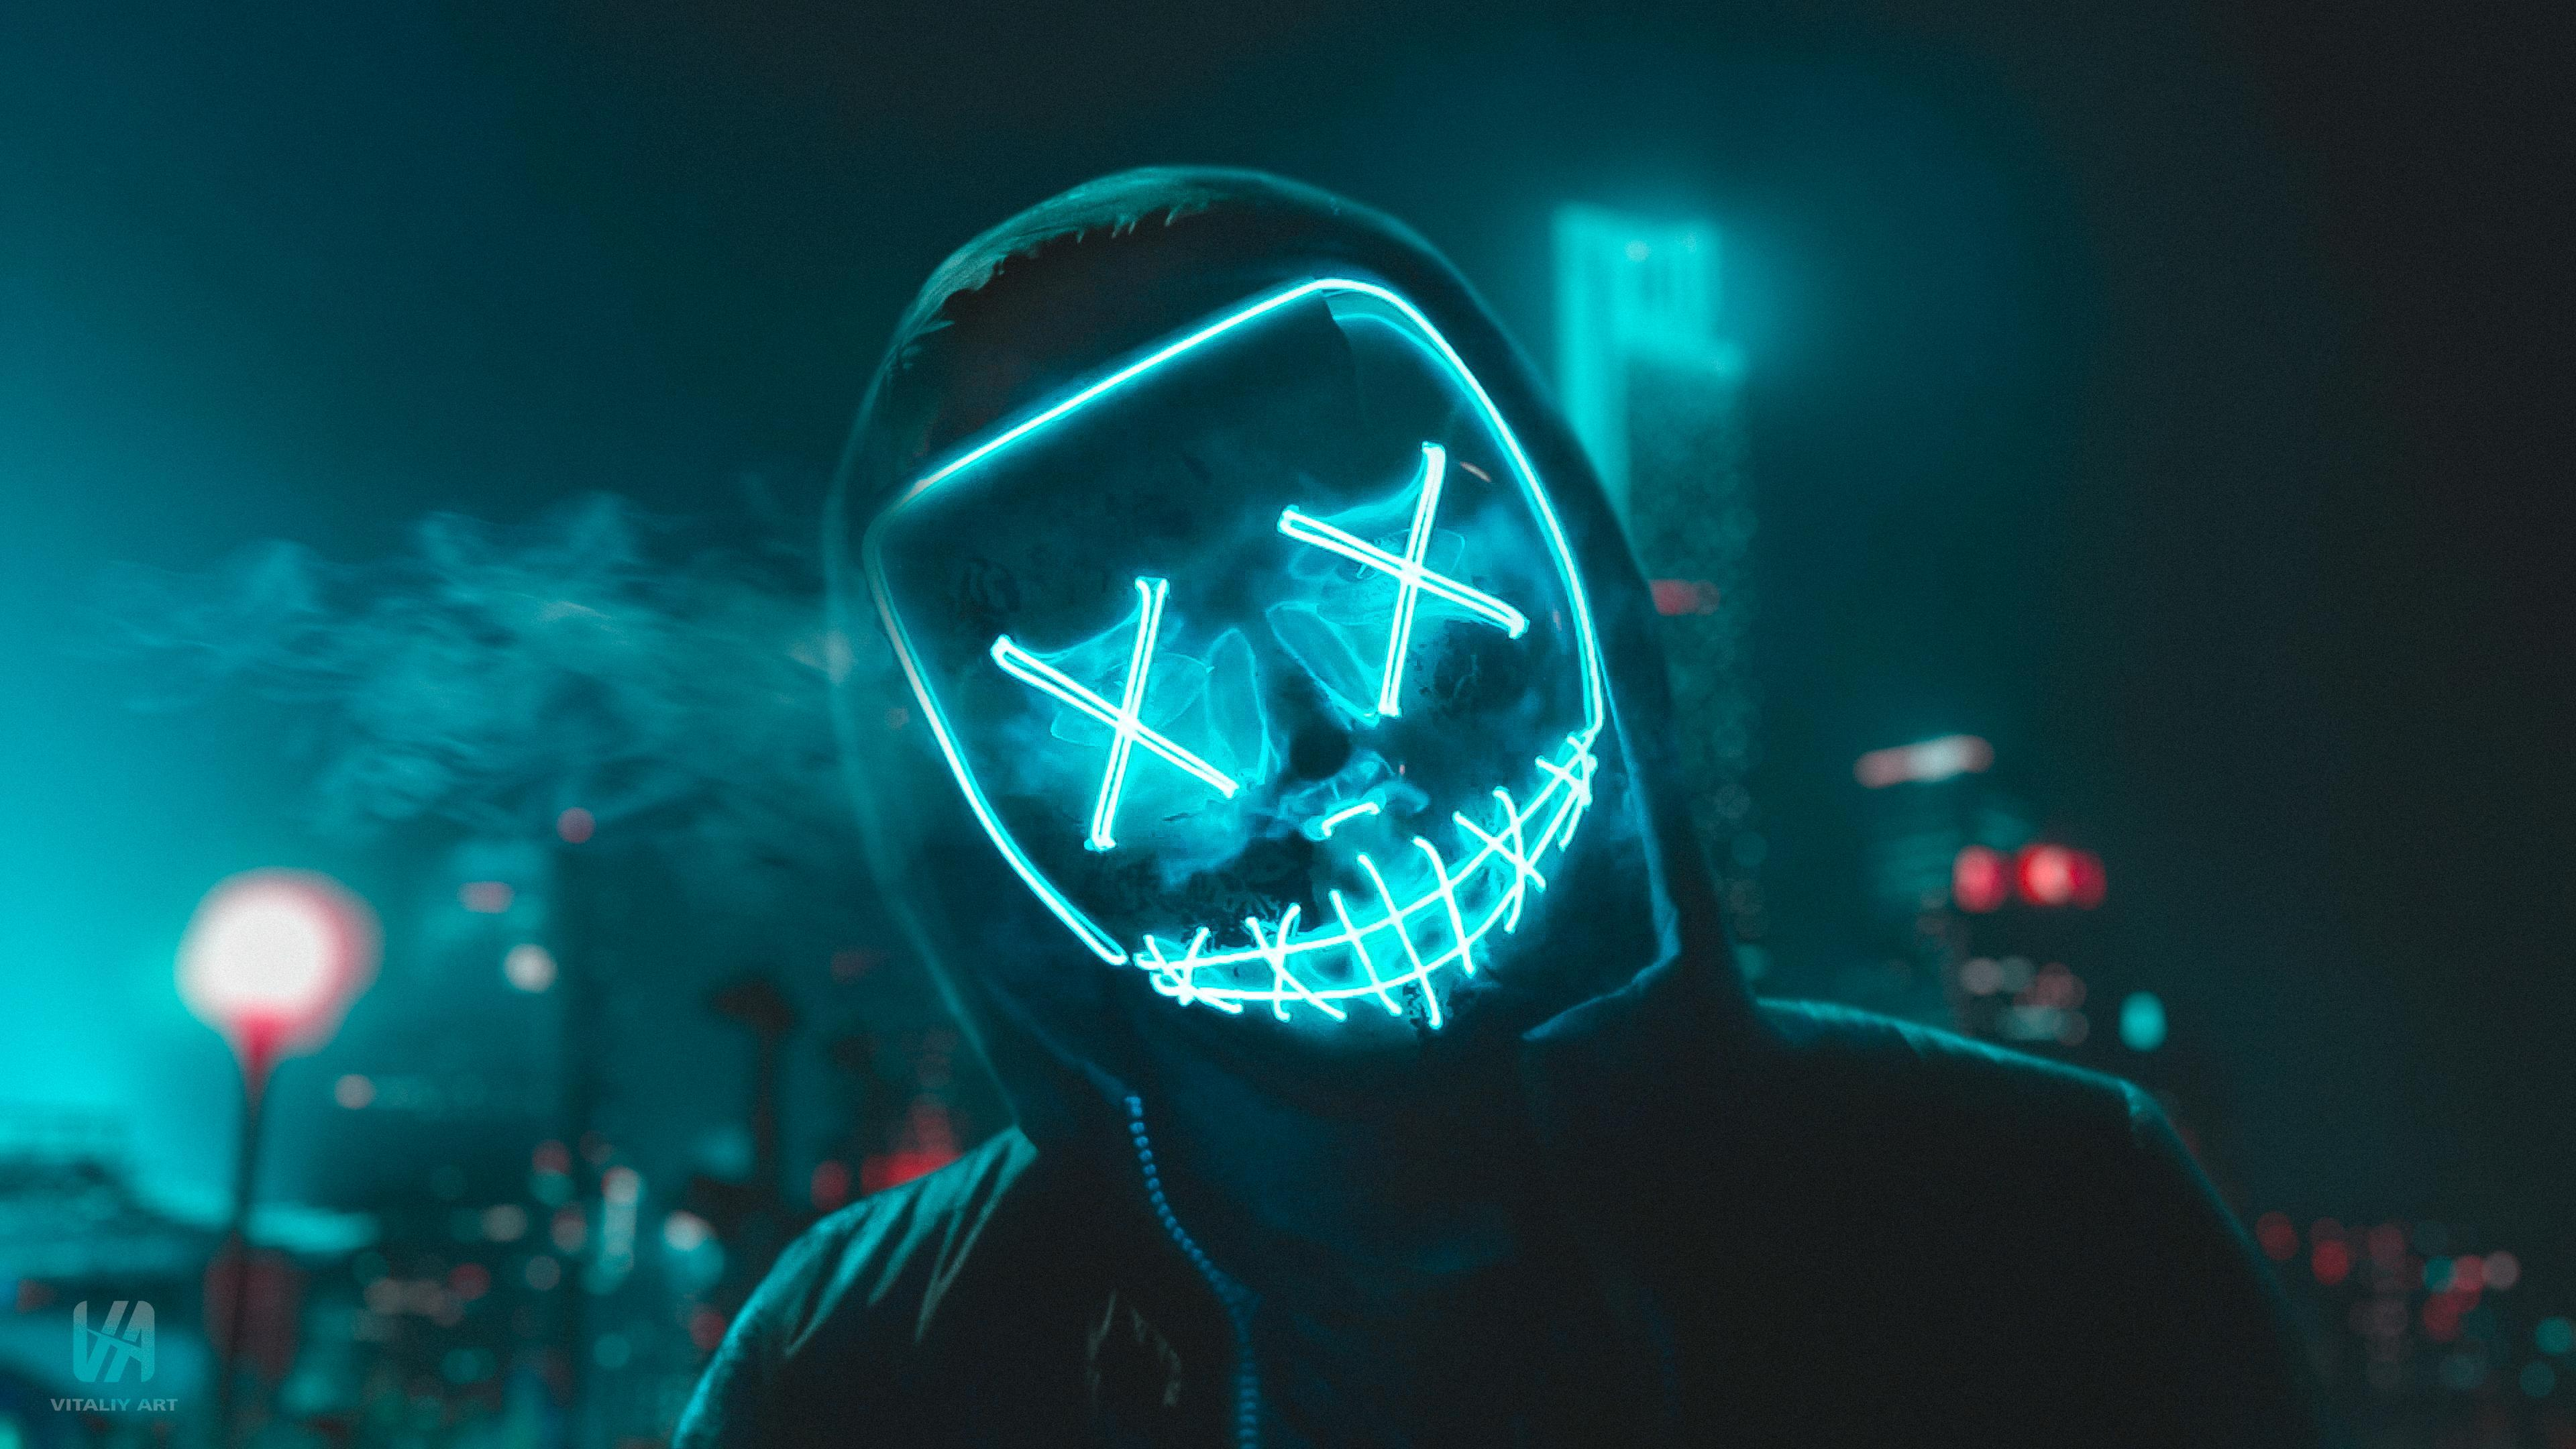 Led Mask Wallpapers Wallpaper Cave